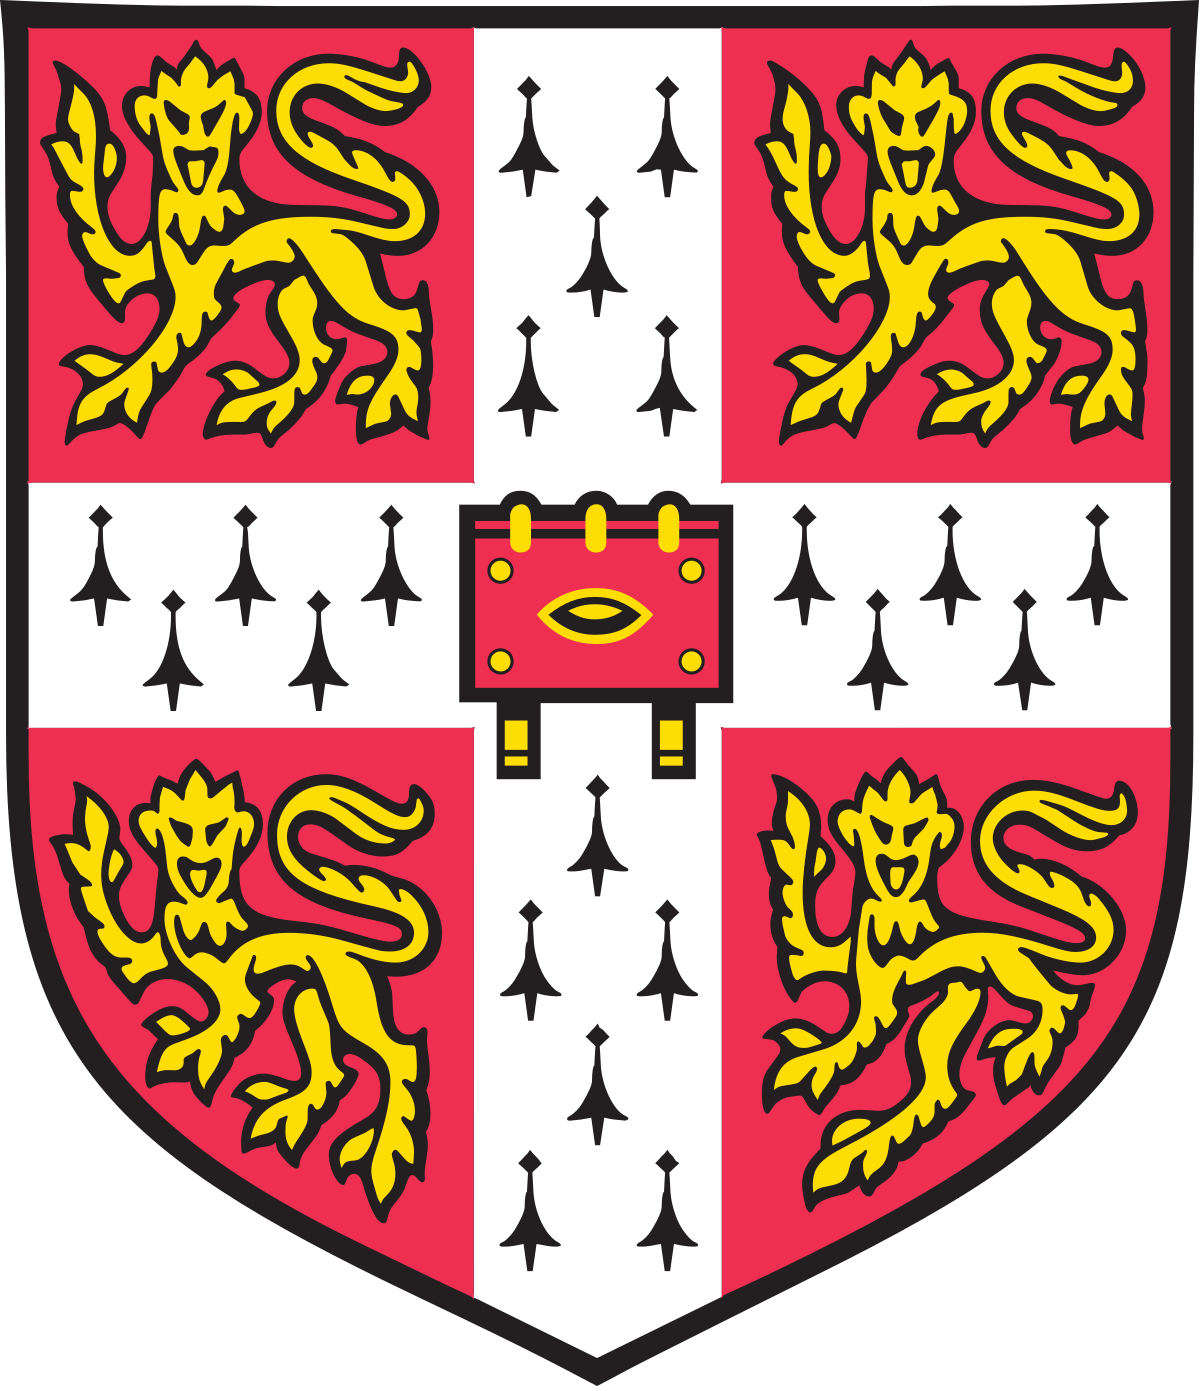 Coat of arms of the University of Cambridge.